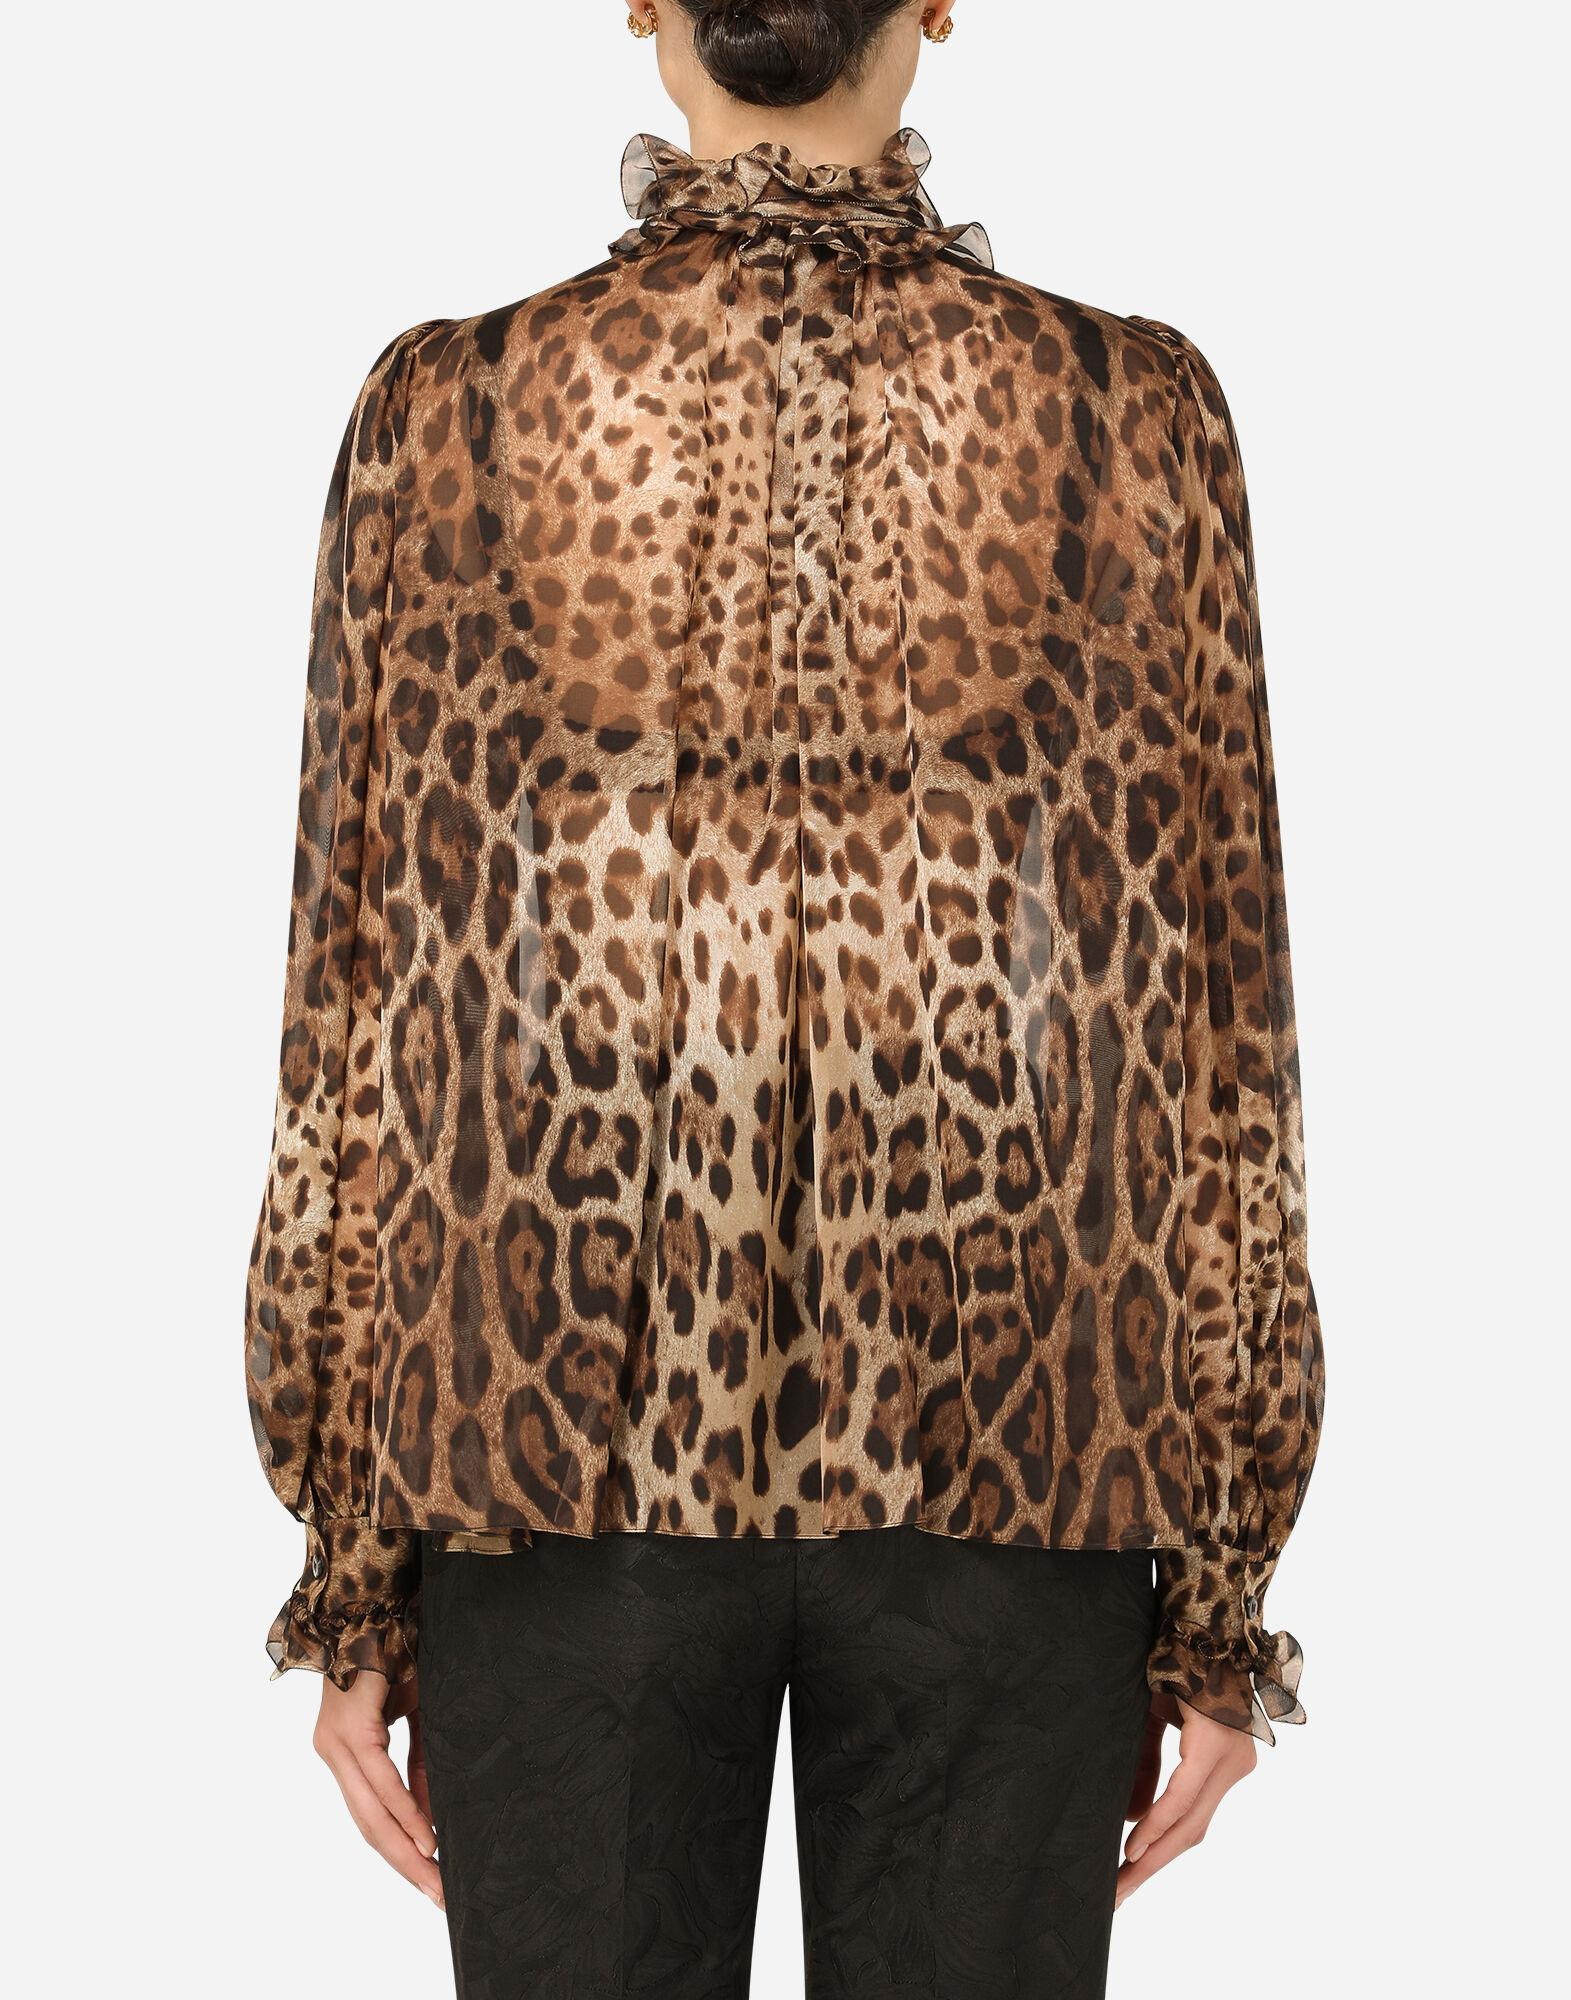 Leopard-print chiffon shirt with ruches and pussy-bow 1